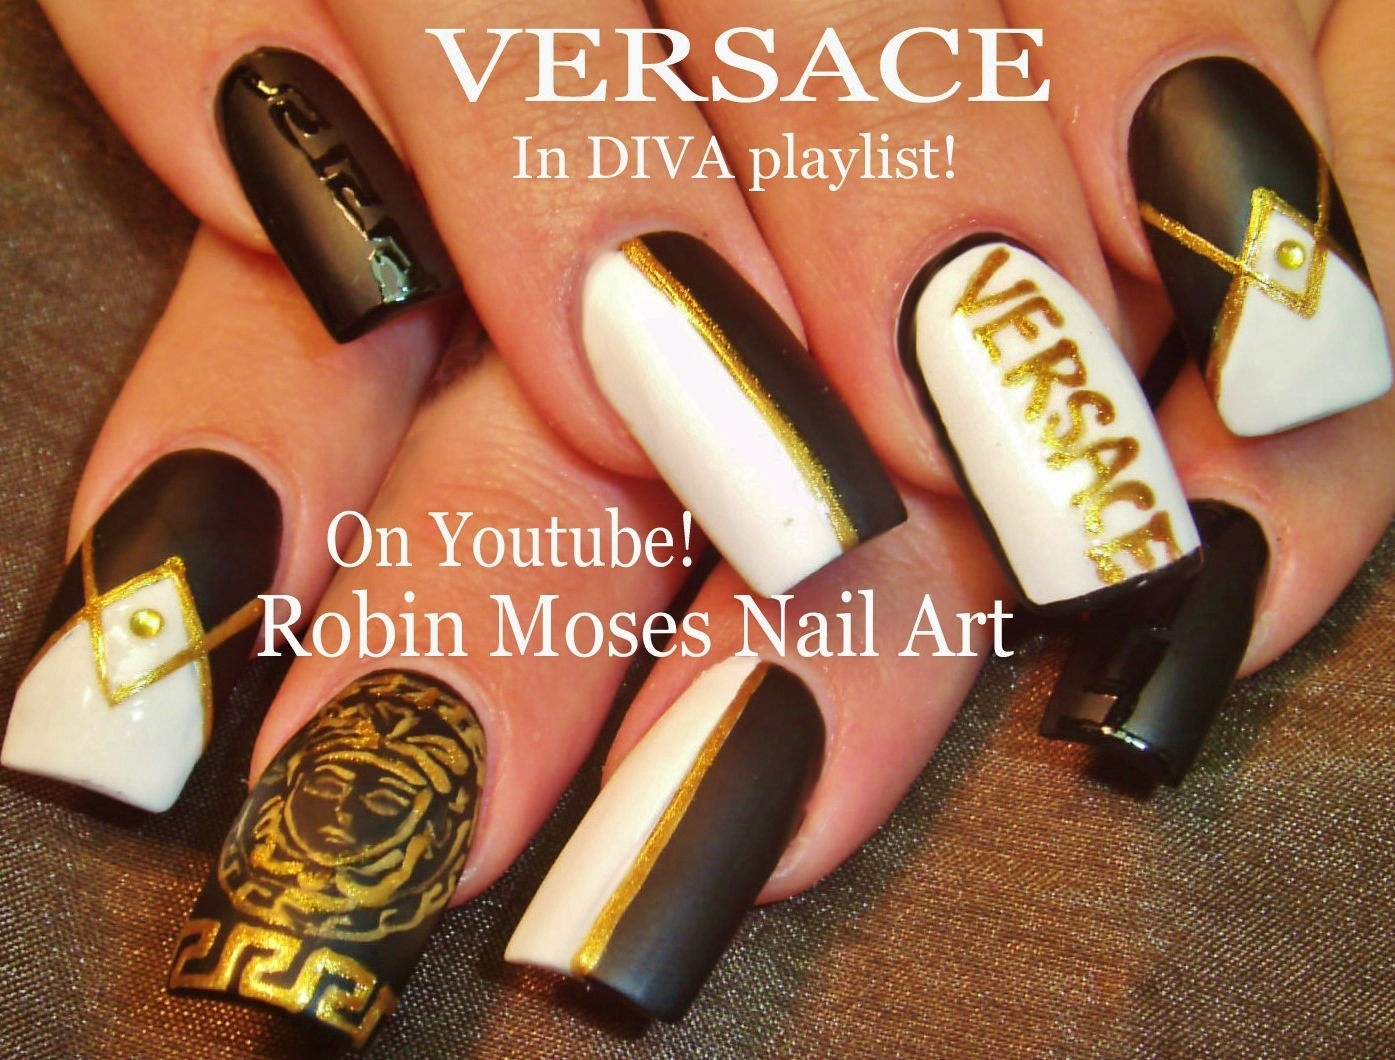 Robin moses nail art soft tan with black and gold winter diva diva diva flower nails diva flowers diva gold nails diva long nails diva nail art diva nail design diva nails diva nails cute diva pink nails prinsesfo Choice Image